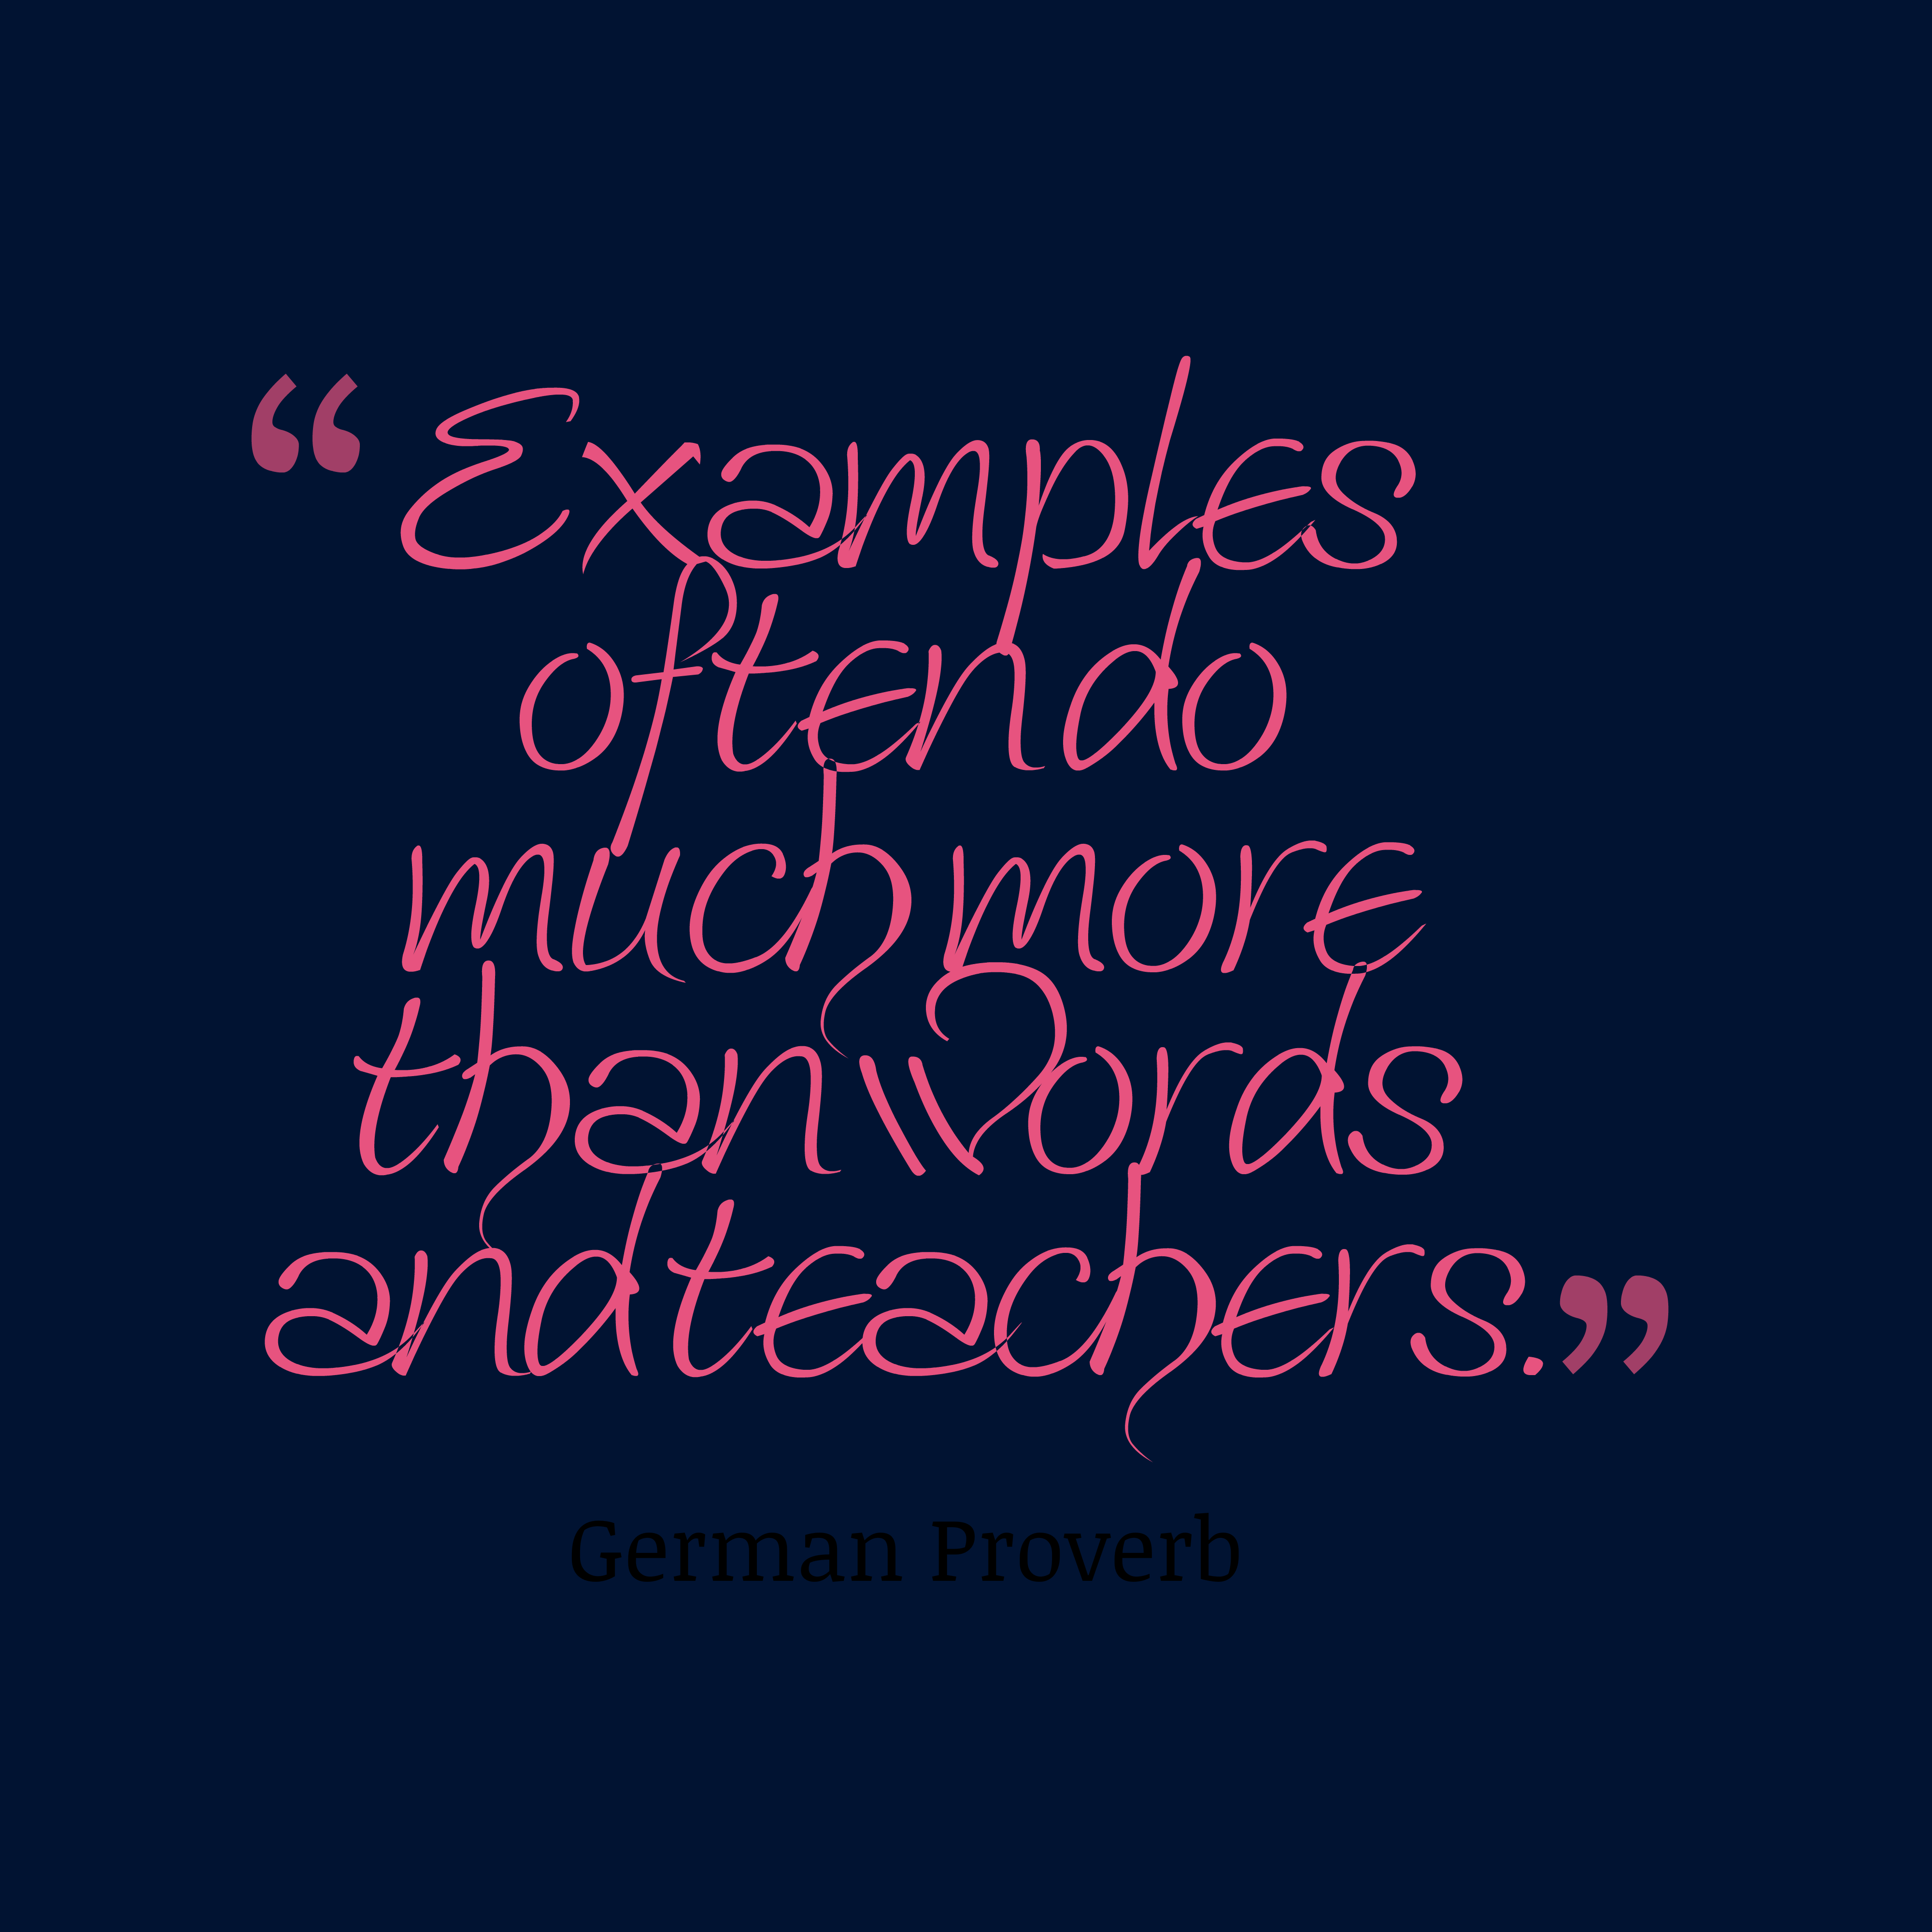 Quotes image of Examples often do much more than words and teachers.